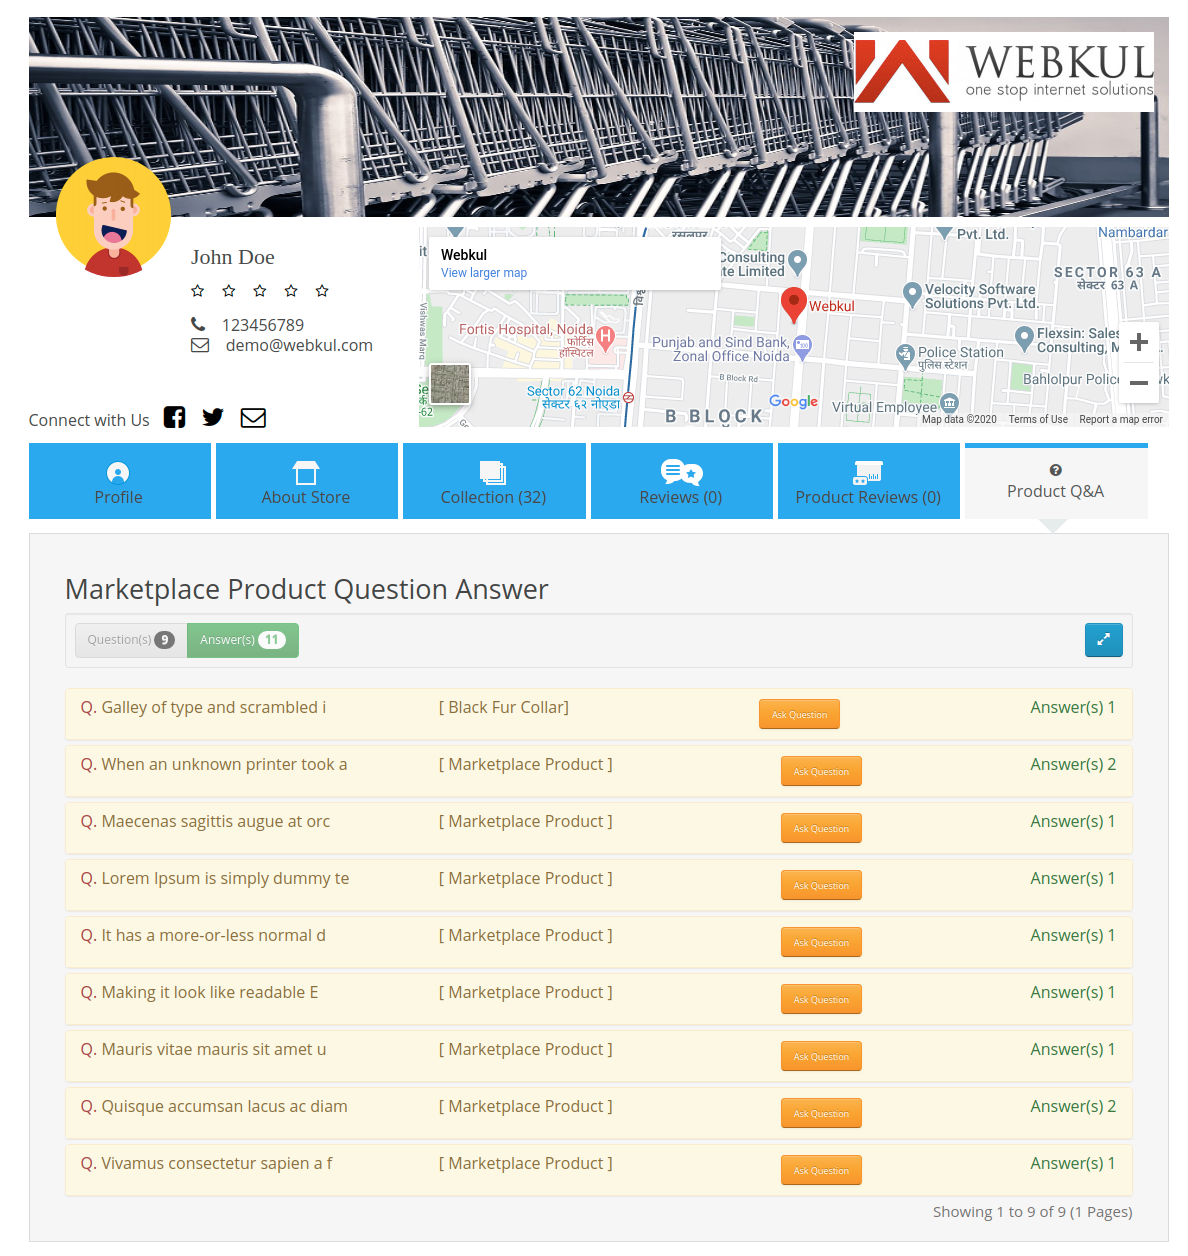 webkul-opencart-marketplace-product-question-and-answer-seller-profile-page